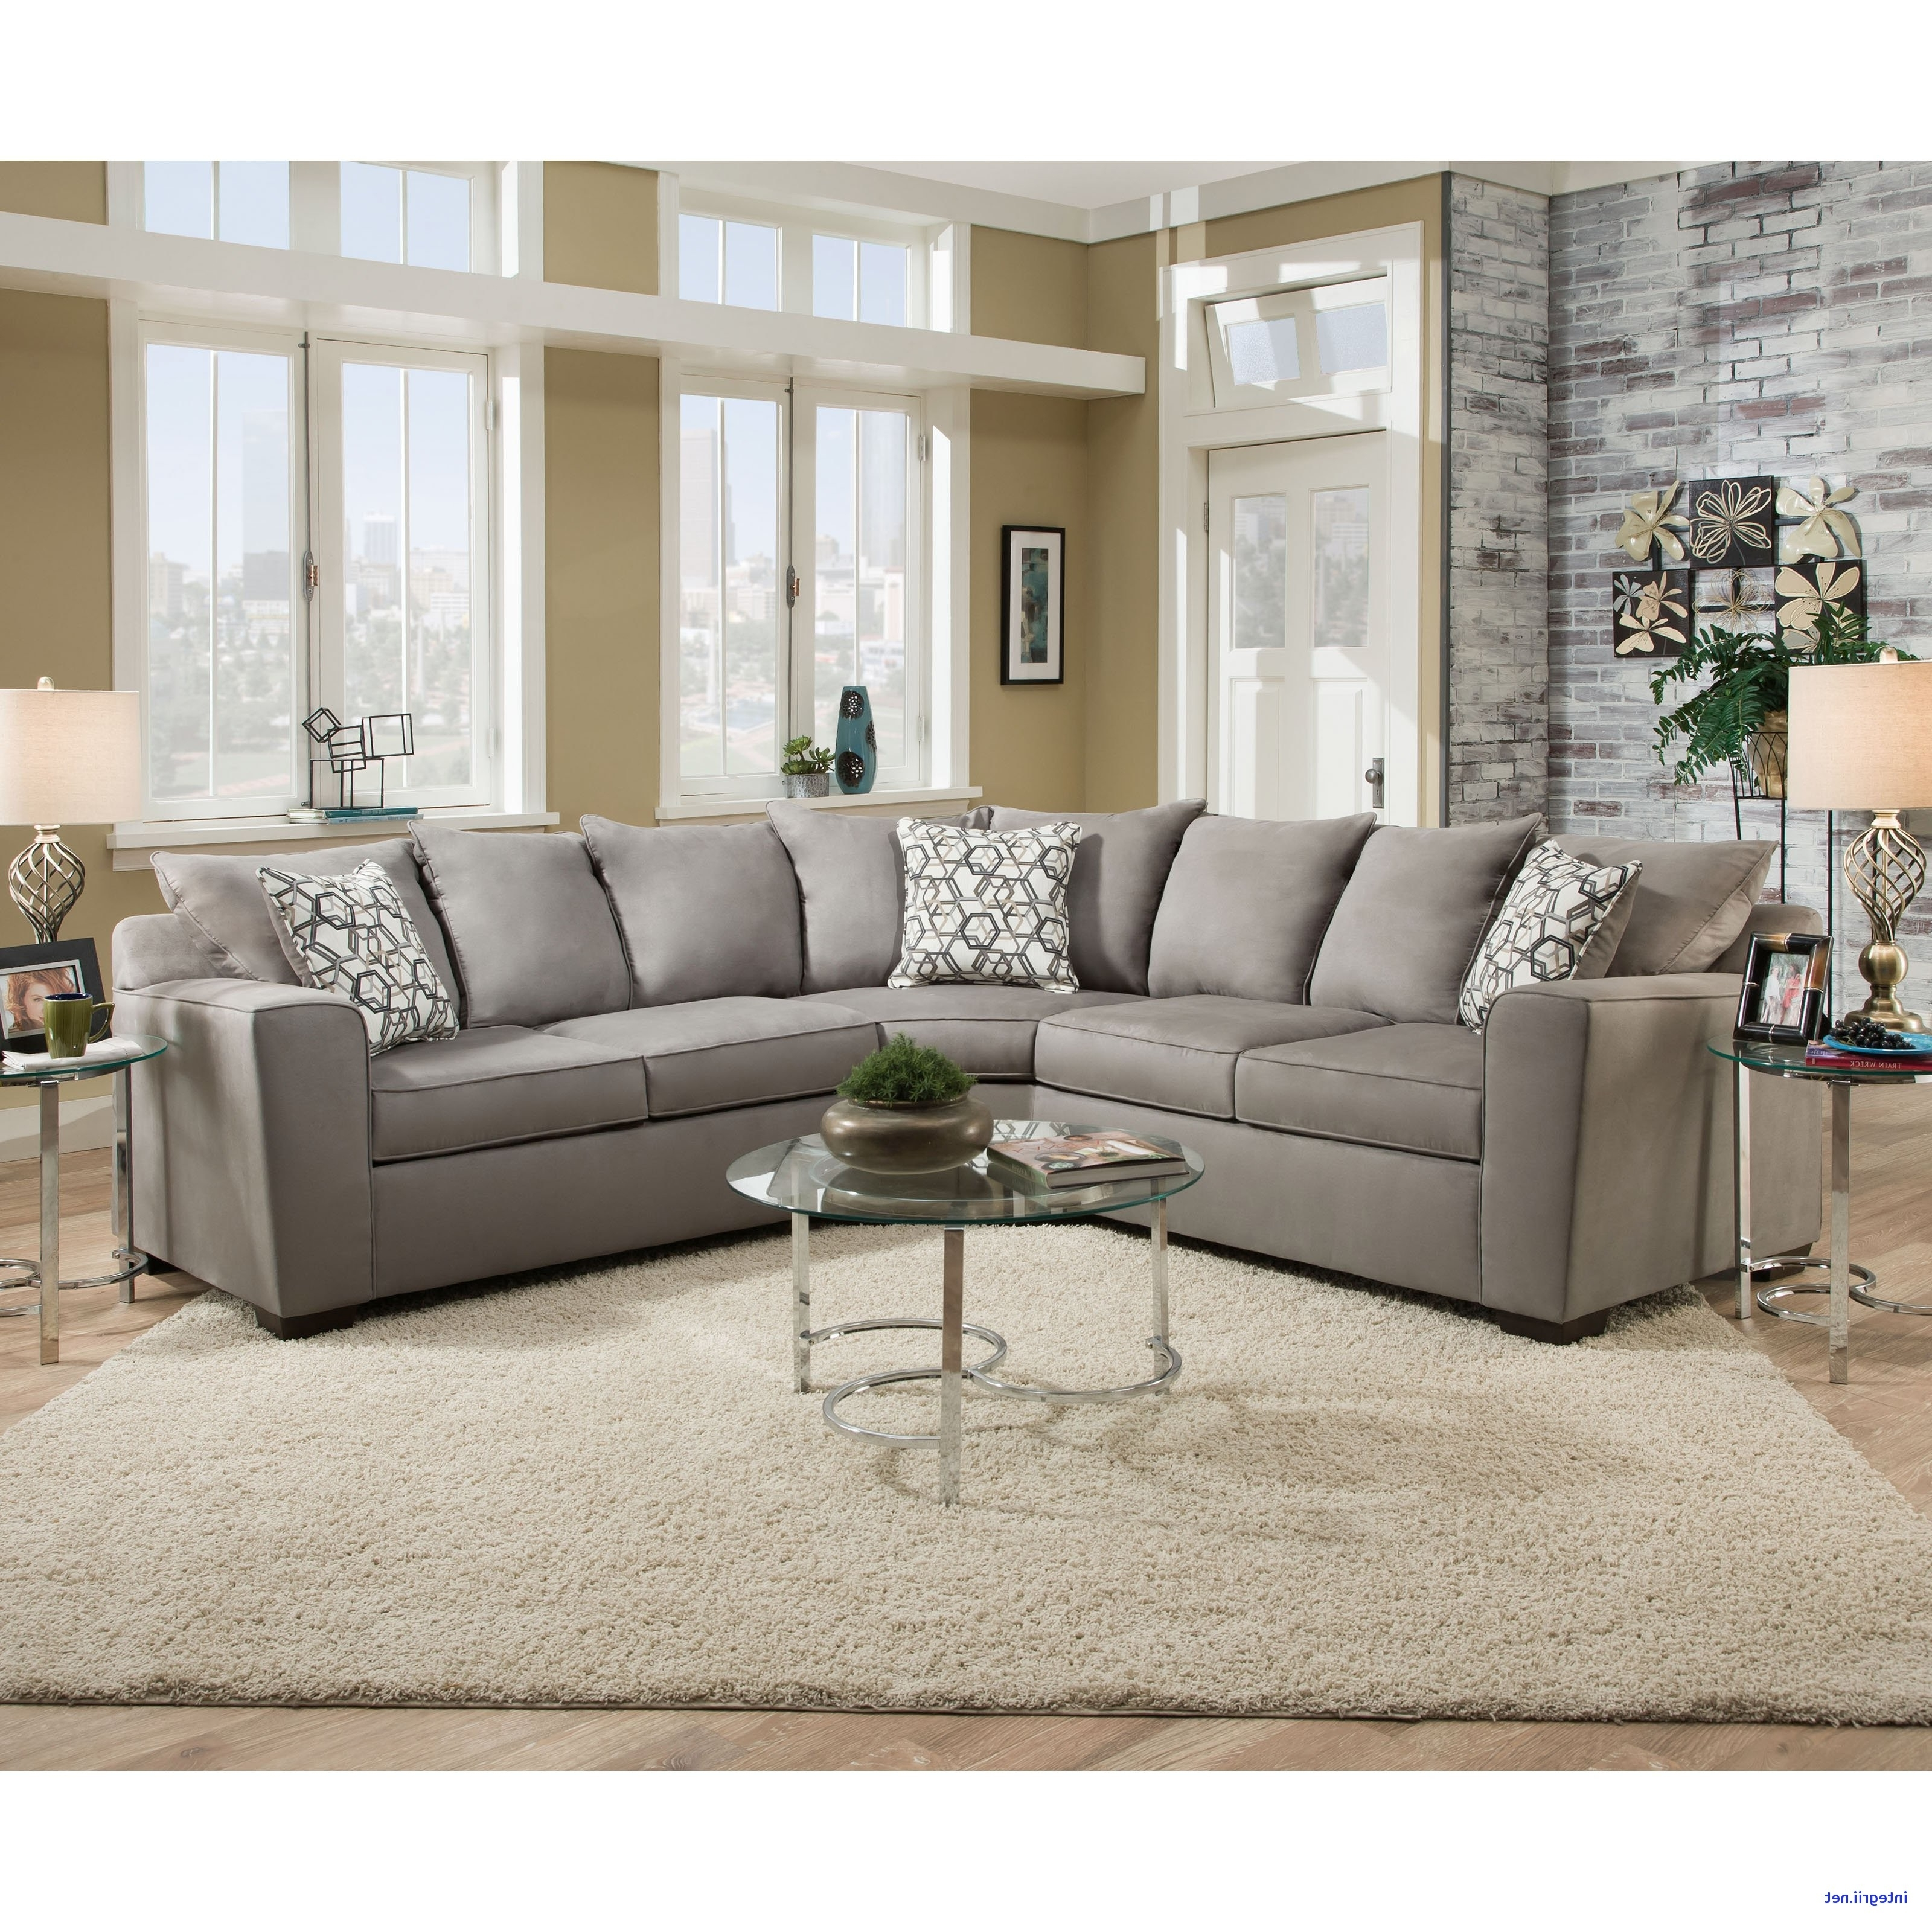 Most Recent Sectionals Unique Chelsea Home Furniture Caroline Sectional Sofa Pertaining To Home Furniture Sectional Sofas (View 15 of 20)